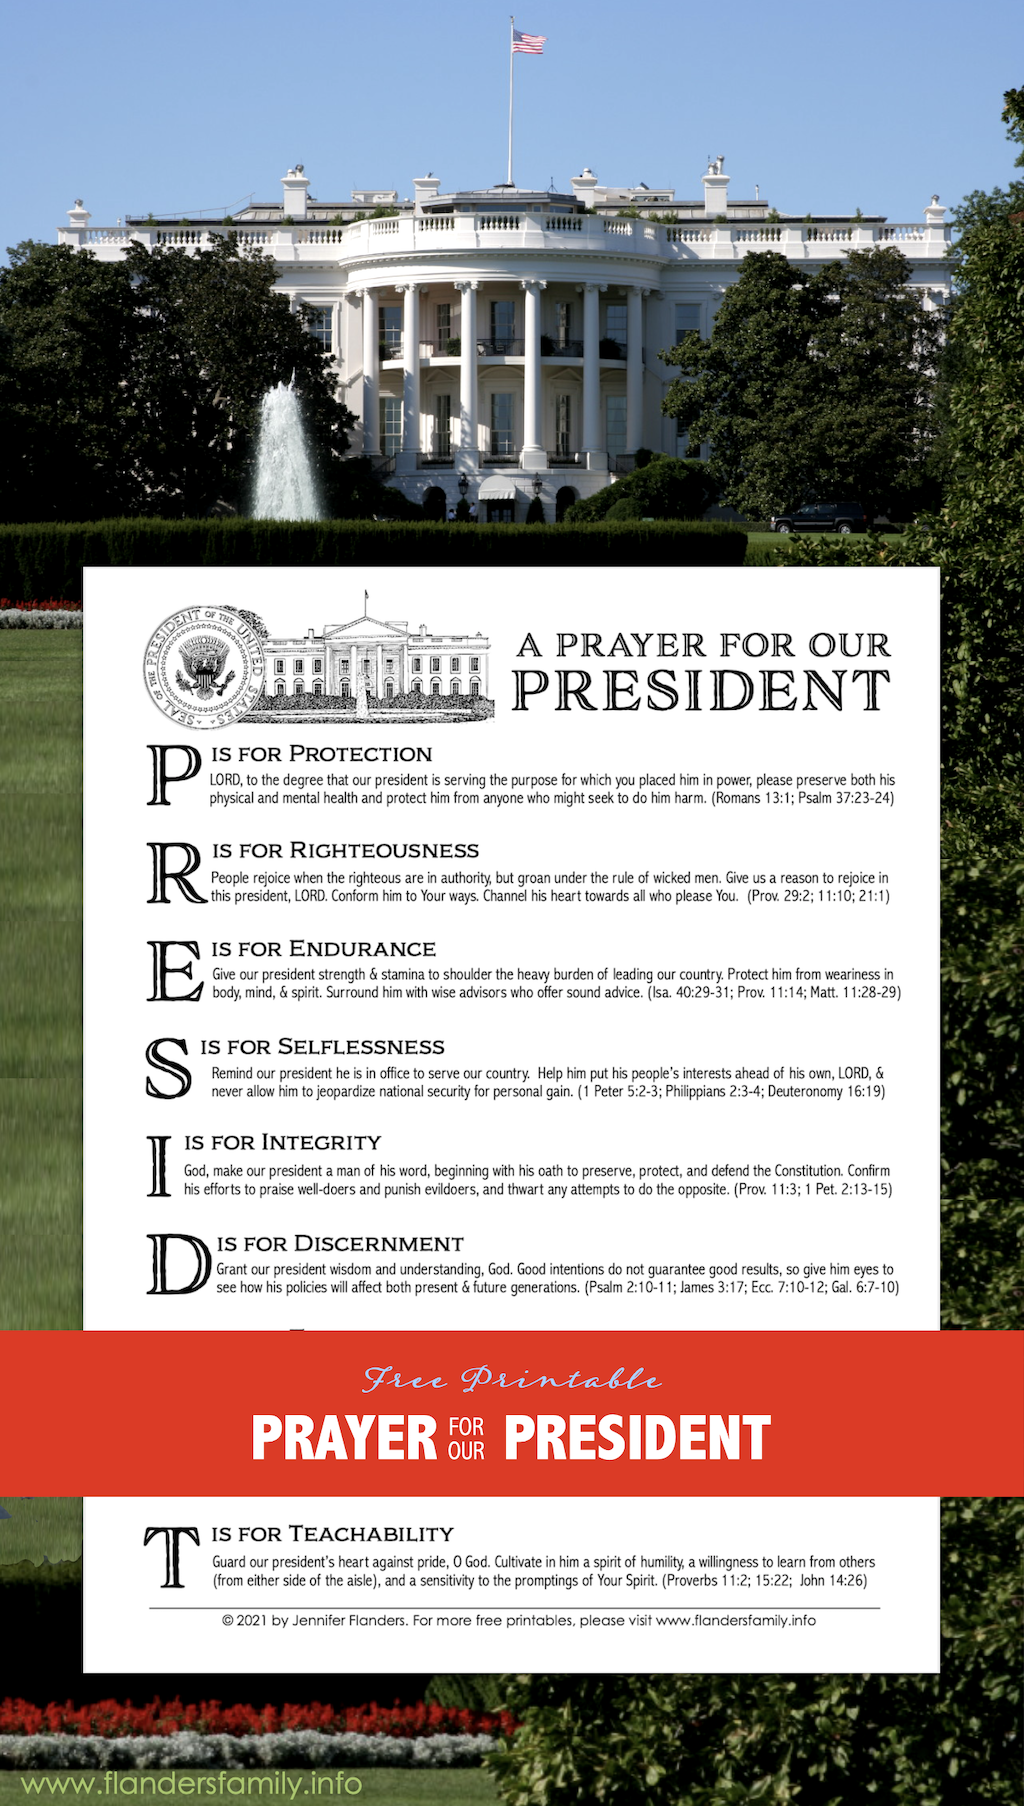 A Prayer for Our President